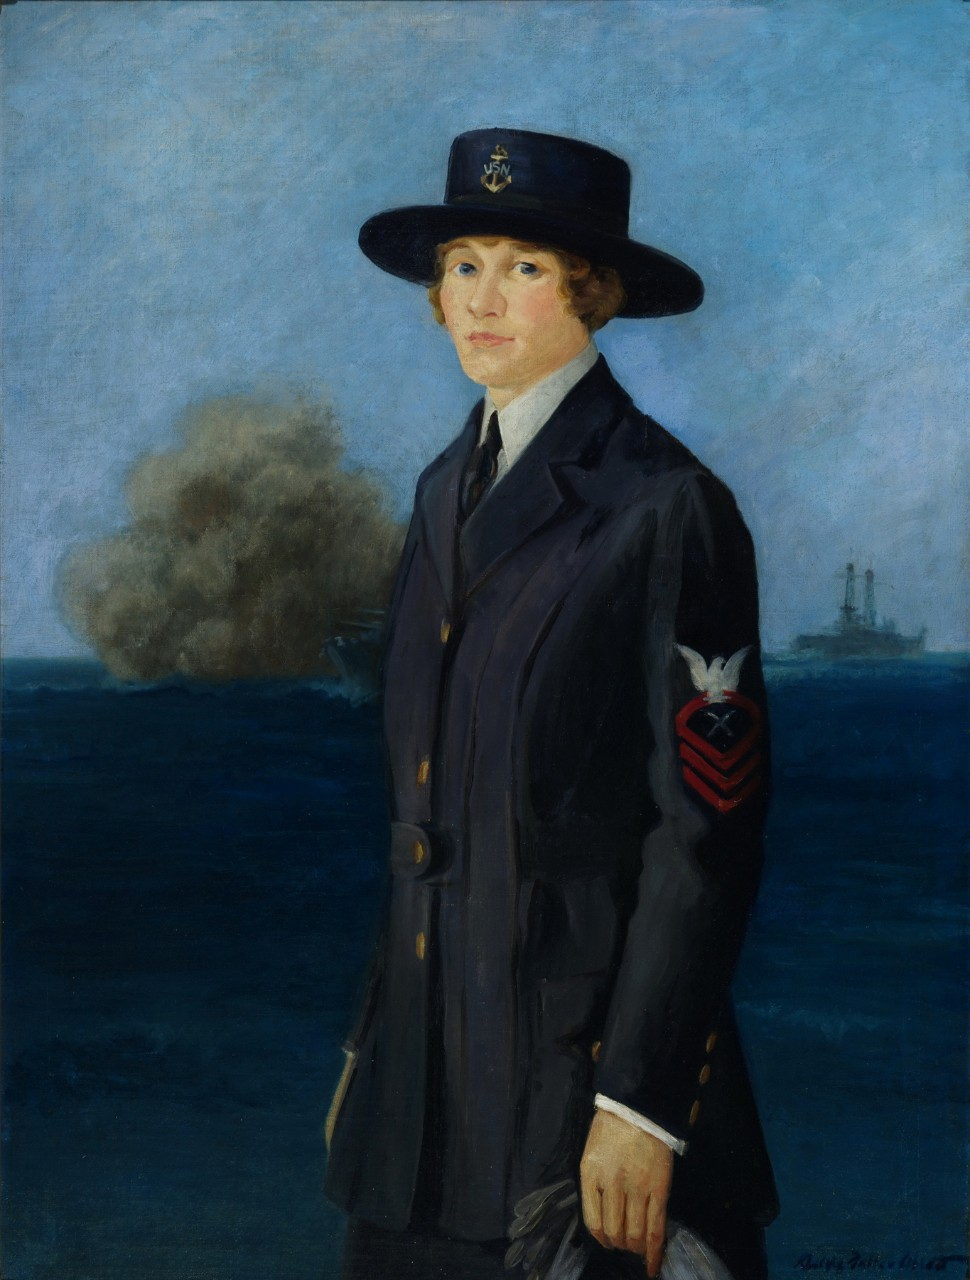 A portrait of a woman wearing a World War I uniform, in the far background is a ship firing its guns